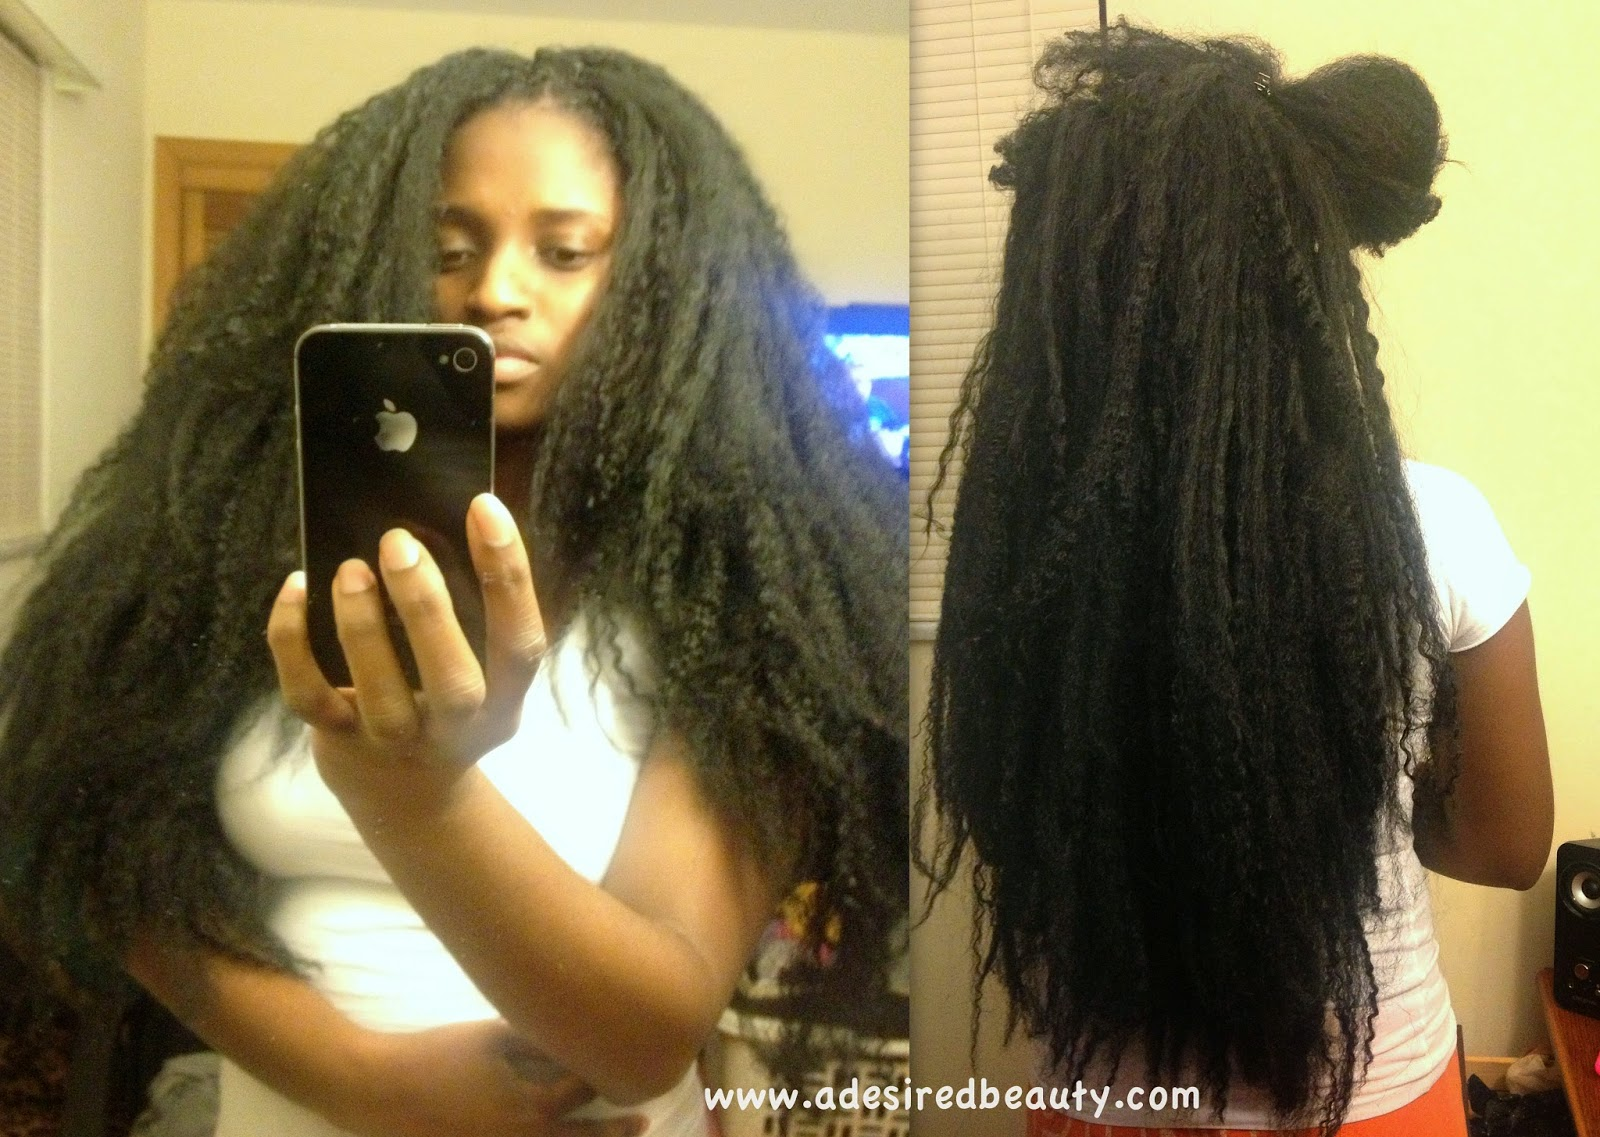 Crochet Hairstyles Straight : Crochet Braid Styles With Straight Hair hairstylegalleries.com